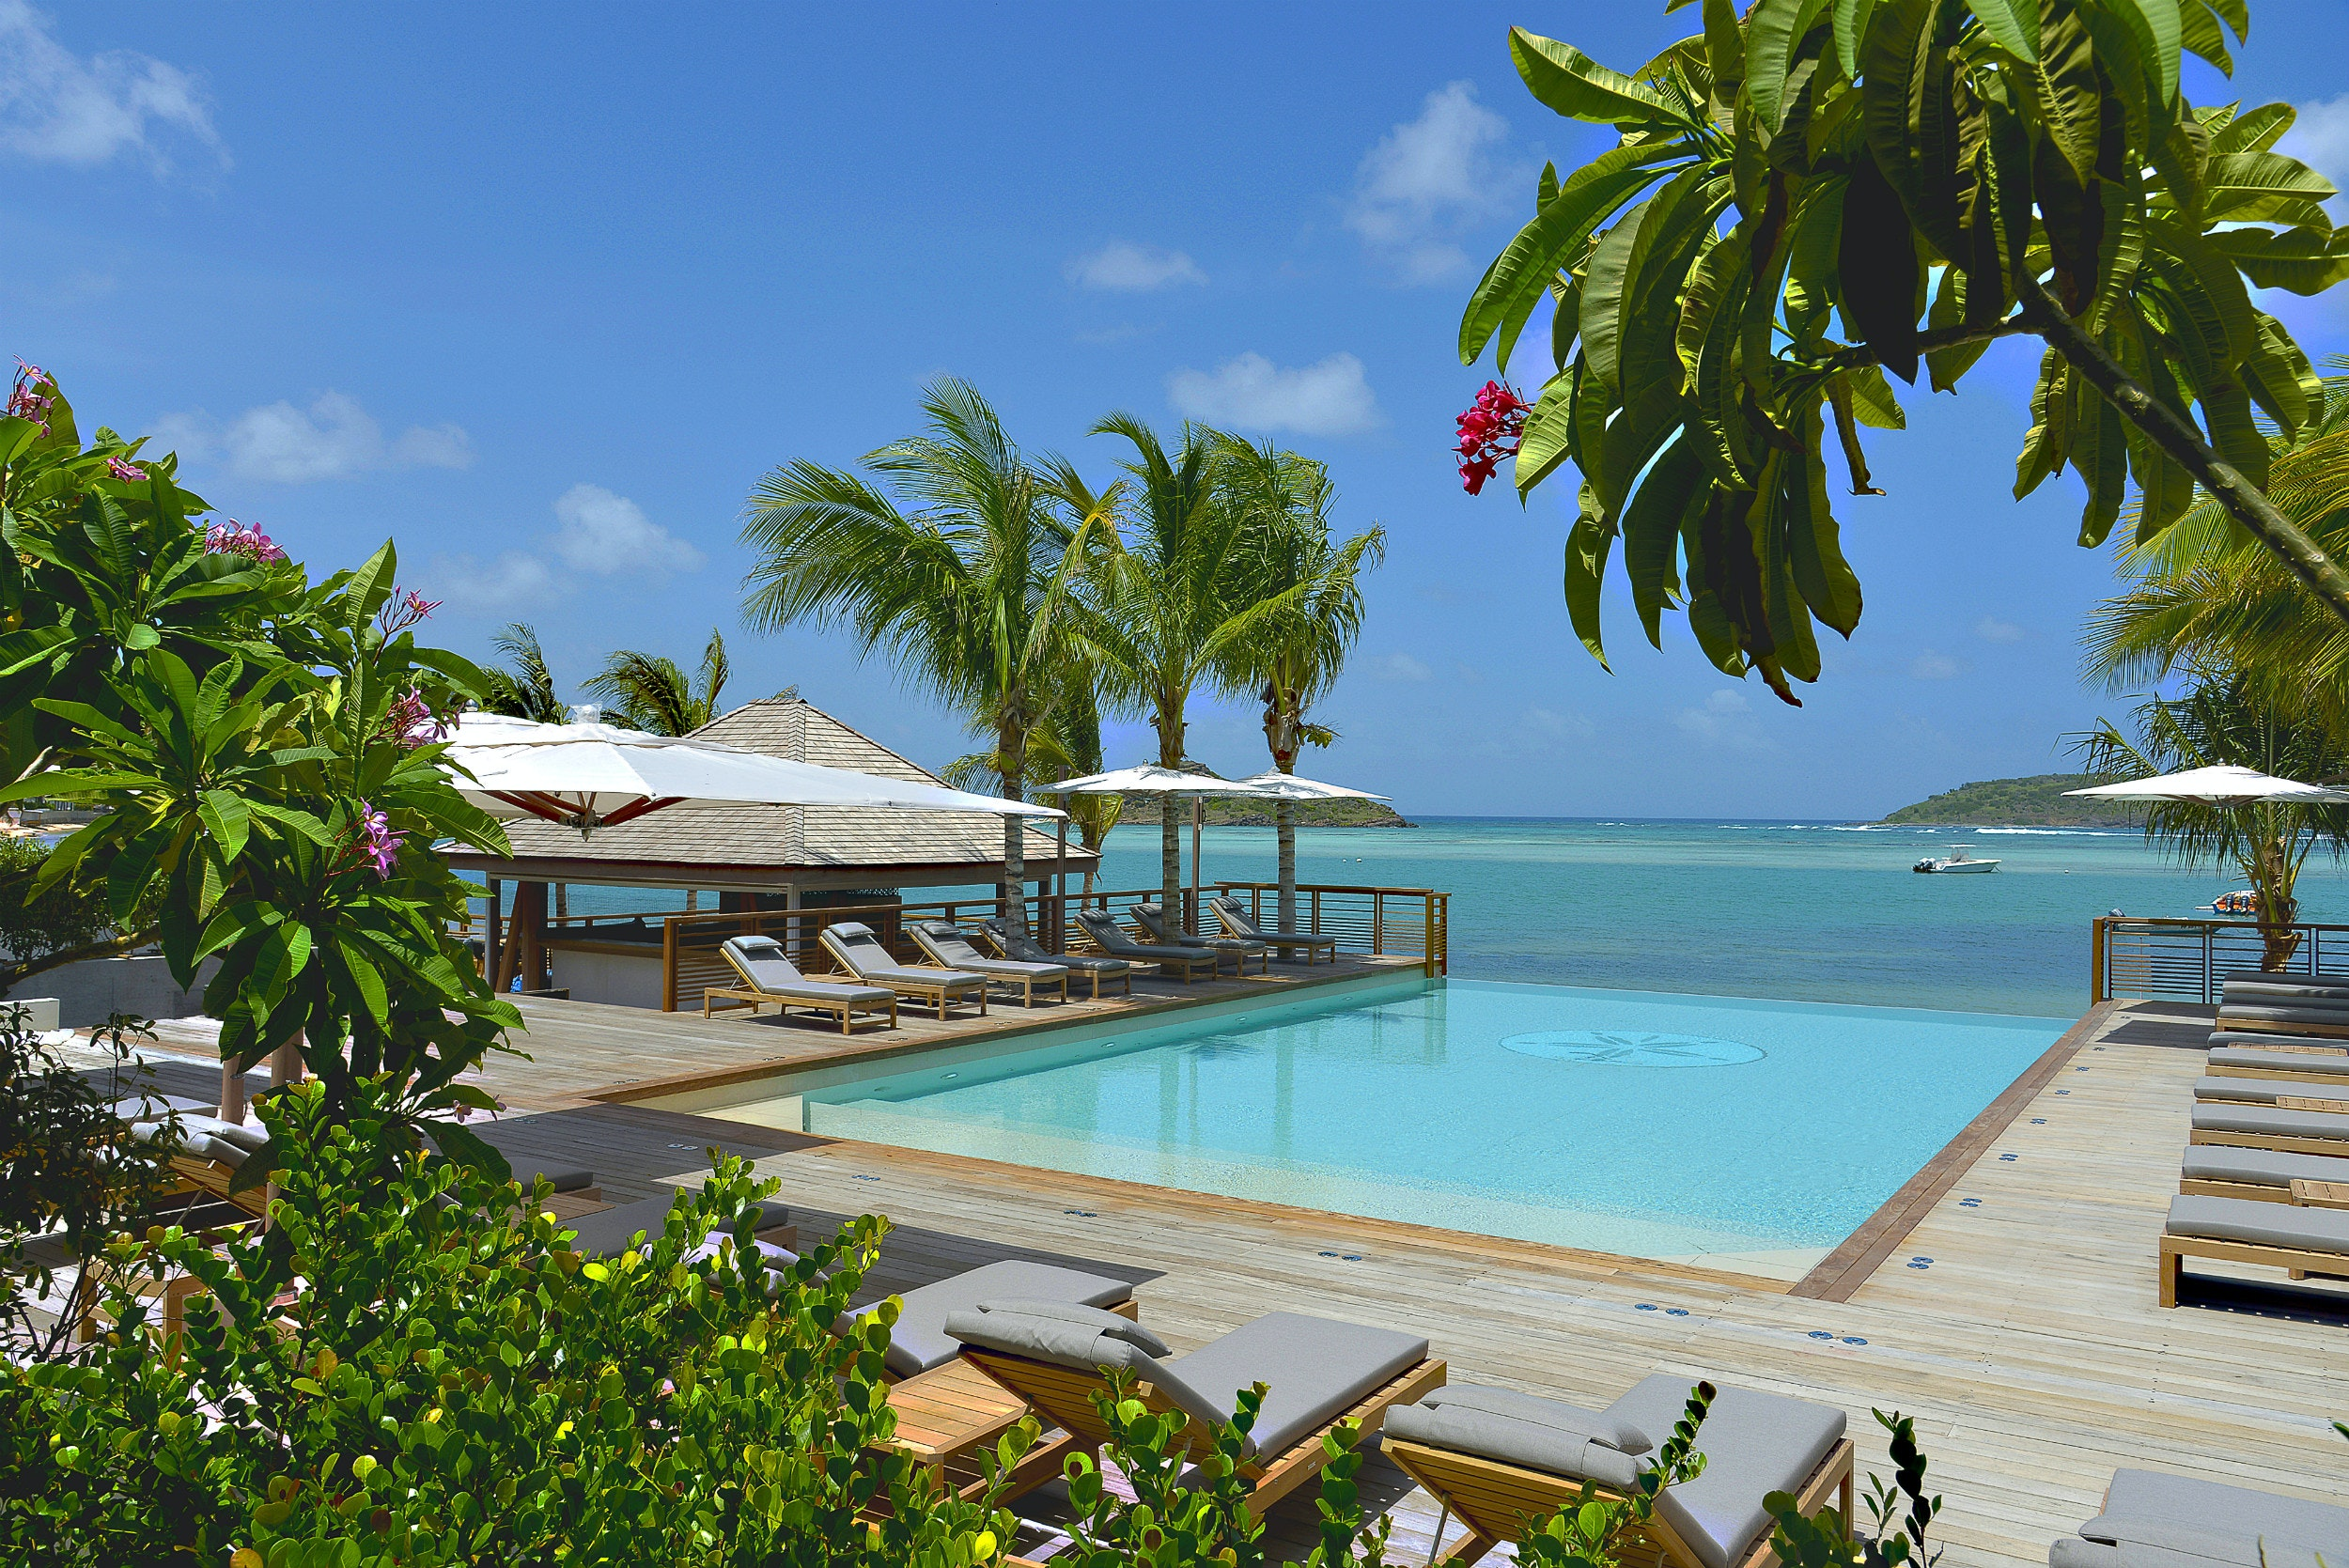 The pool's open at Le Barthélemy Hotel & Spa in St. Bart's.